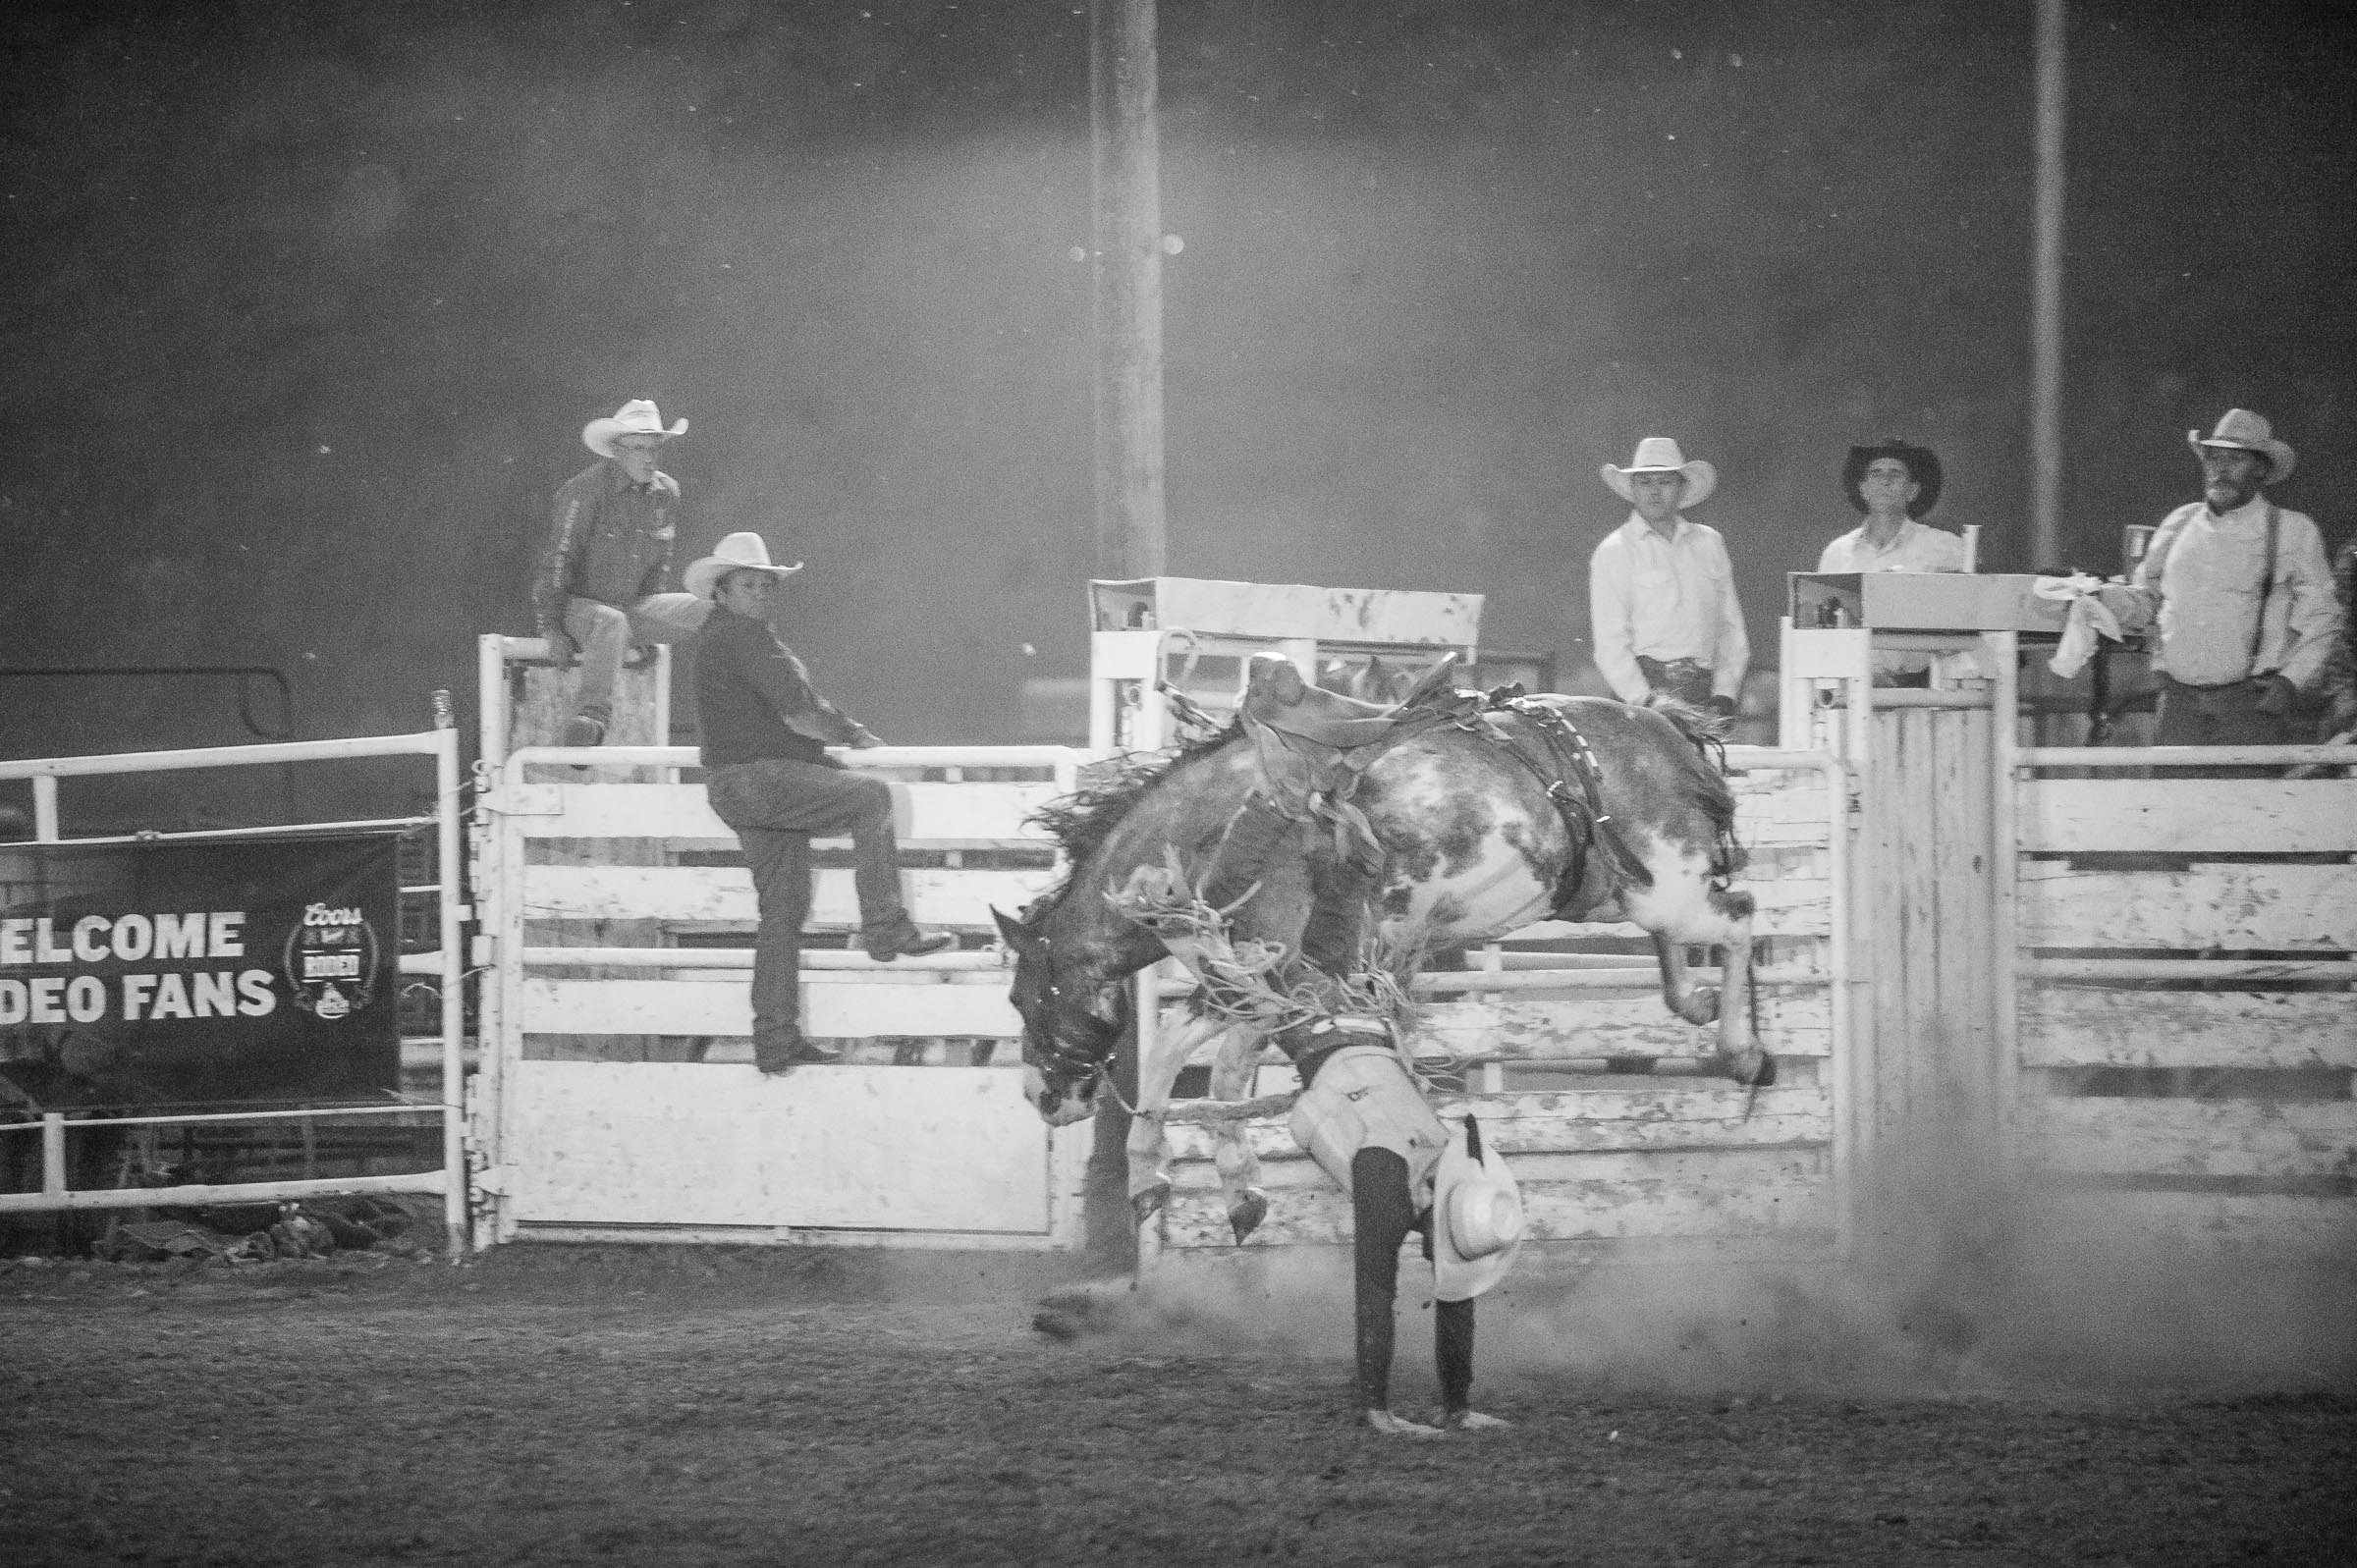 Saddle bronc rider landing on his hands after being thrown from horse © Tony Bynum